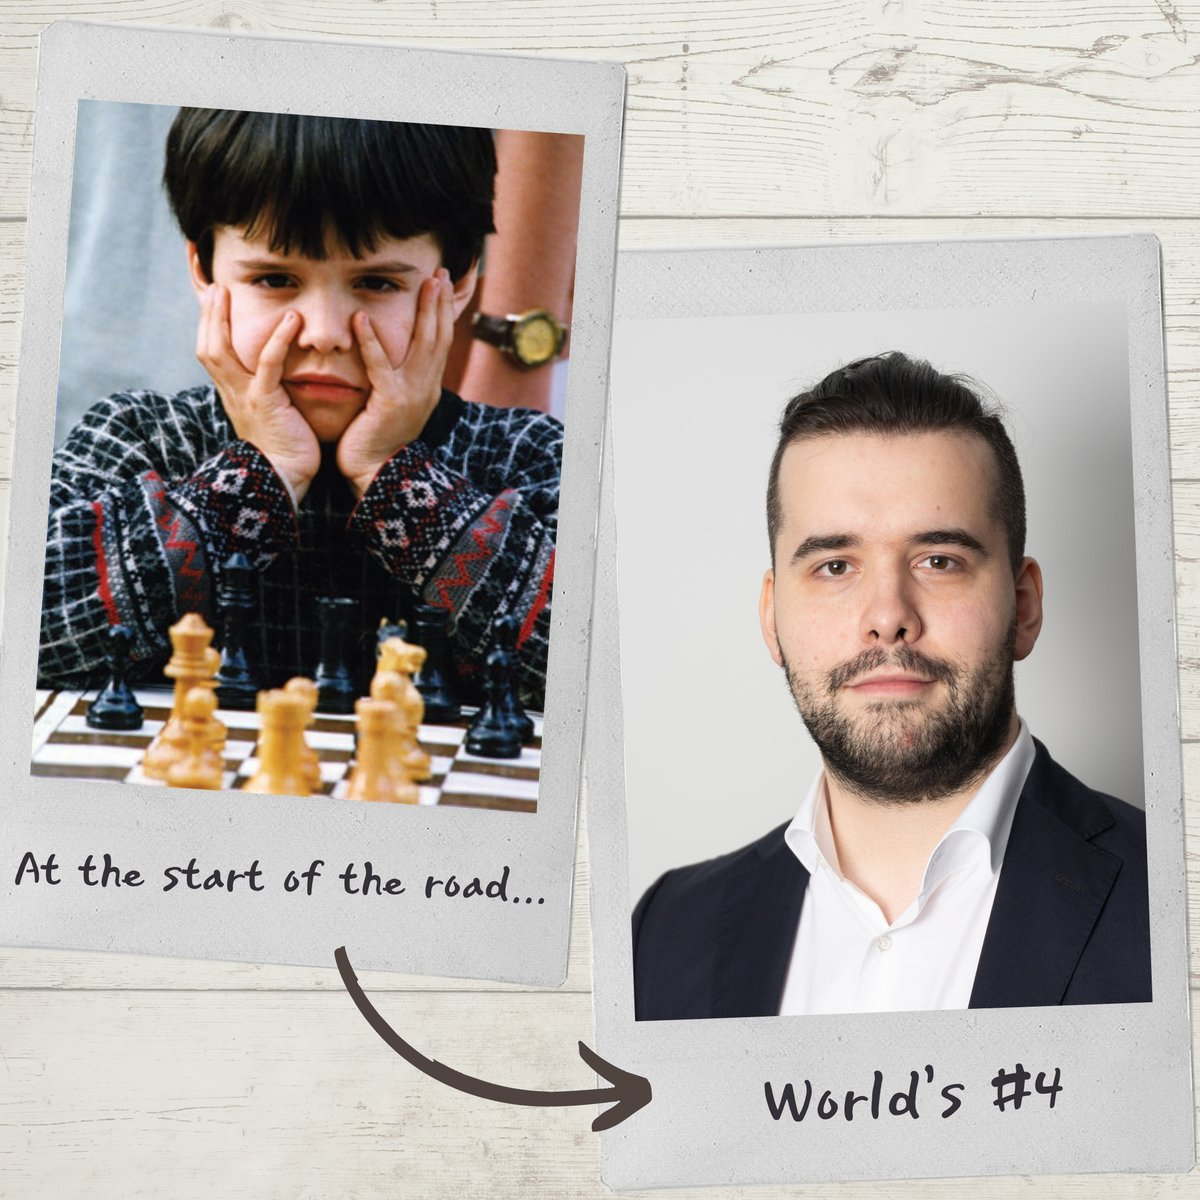 test Twitter Media - Ian Nepomniachtchi turns 30 today! 🥳  World's #4 rated player and a joint (together with Maxime Vachier-Lagrave) leader of the adjourned 2019 Candidates Tournament, Ian is one of the leaders of his generation.  #HBD #chess #nowandthen https://t.co/lgEao3LLoS